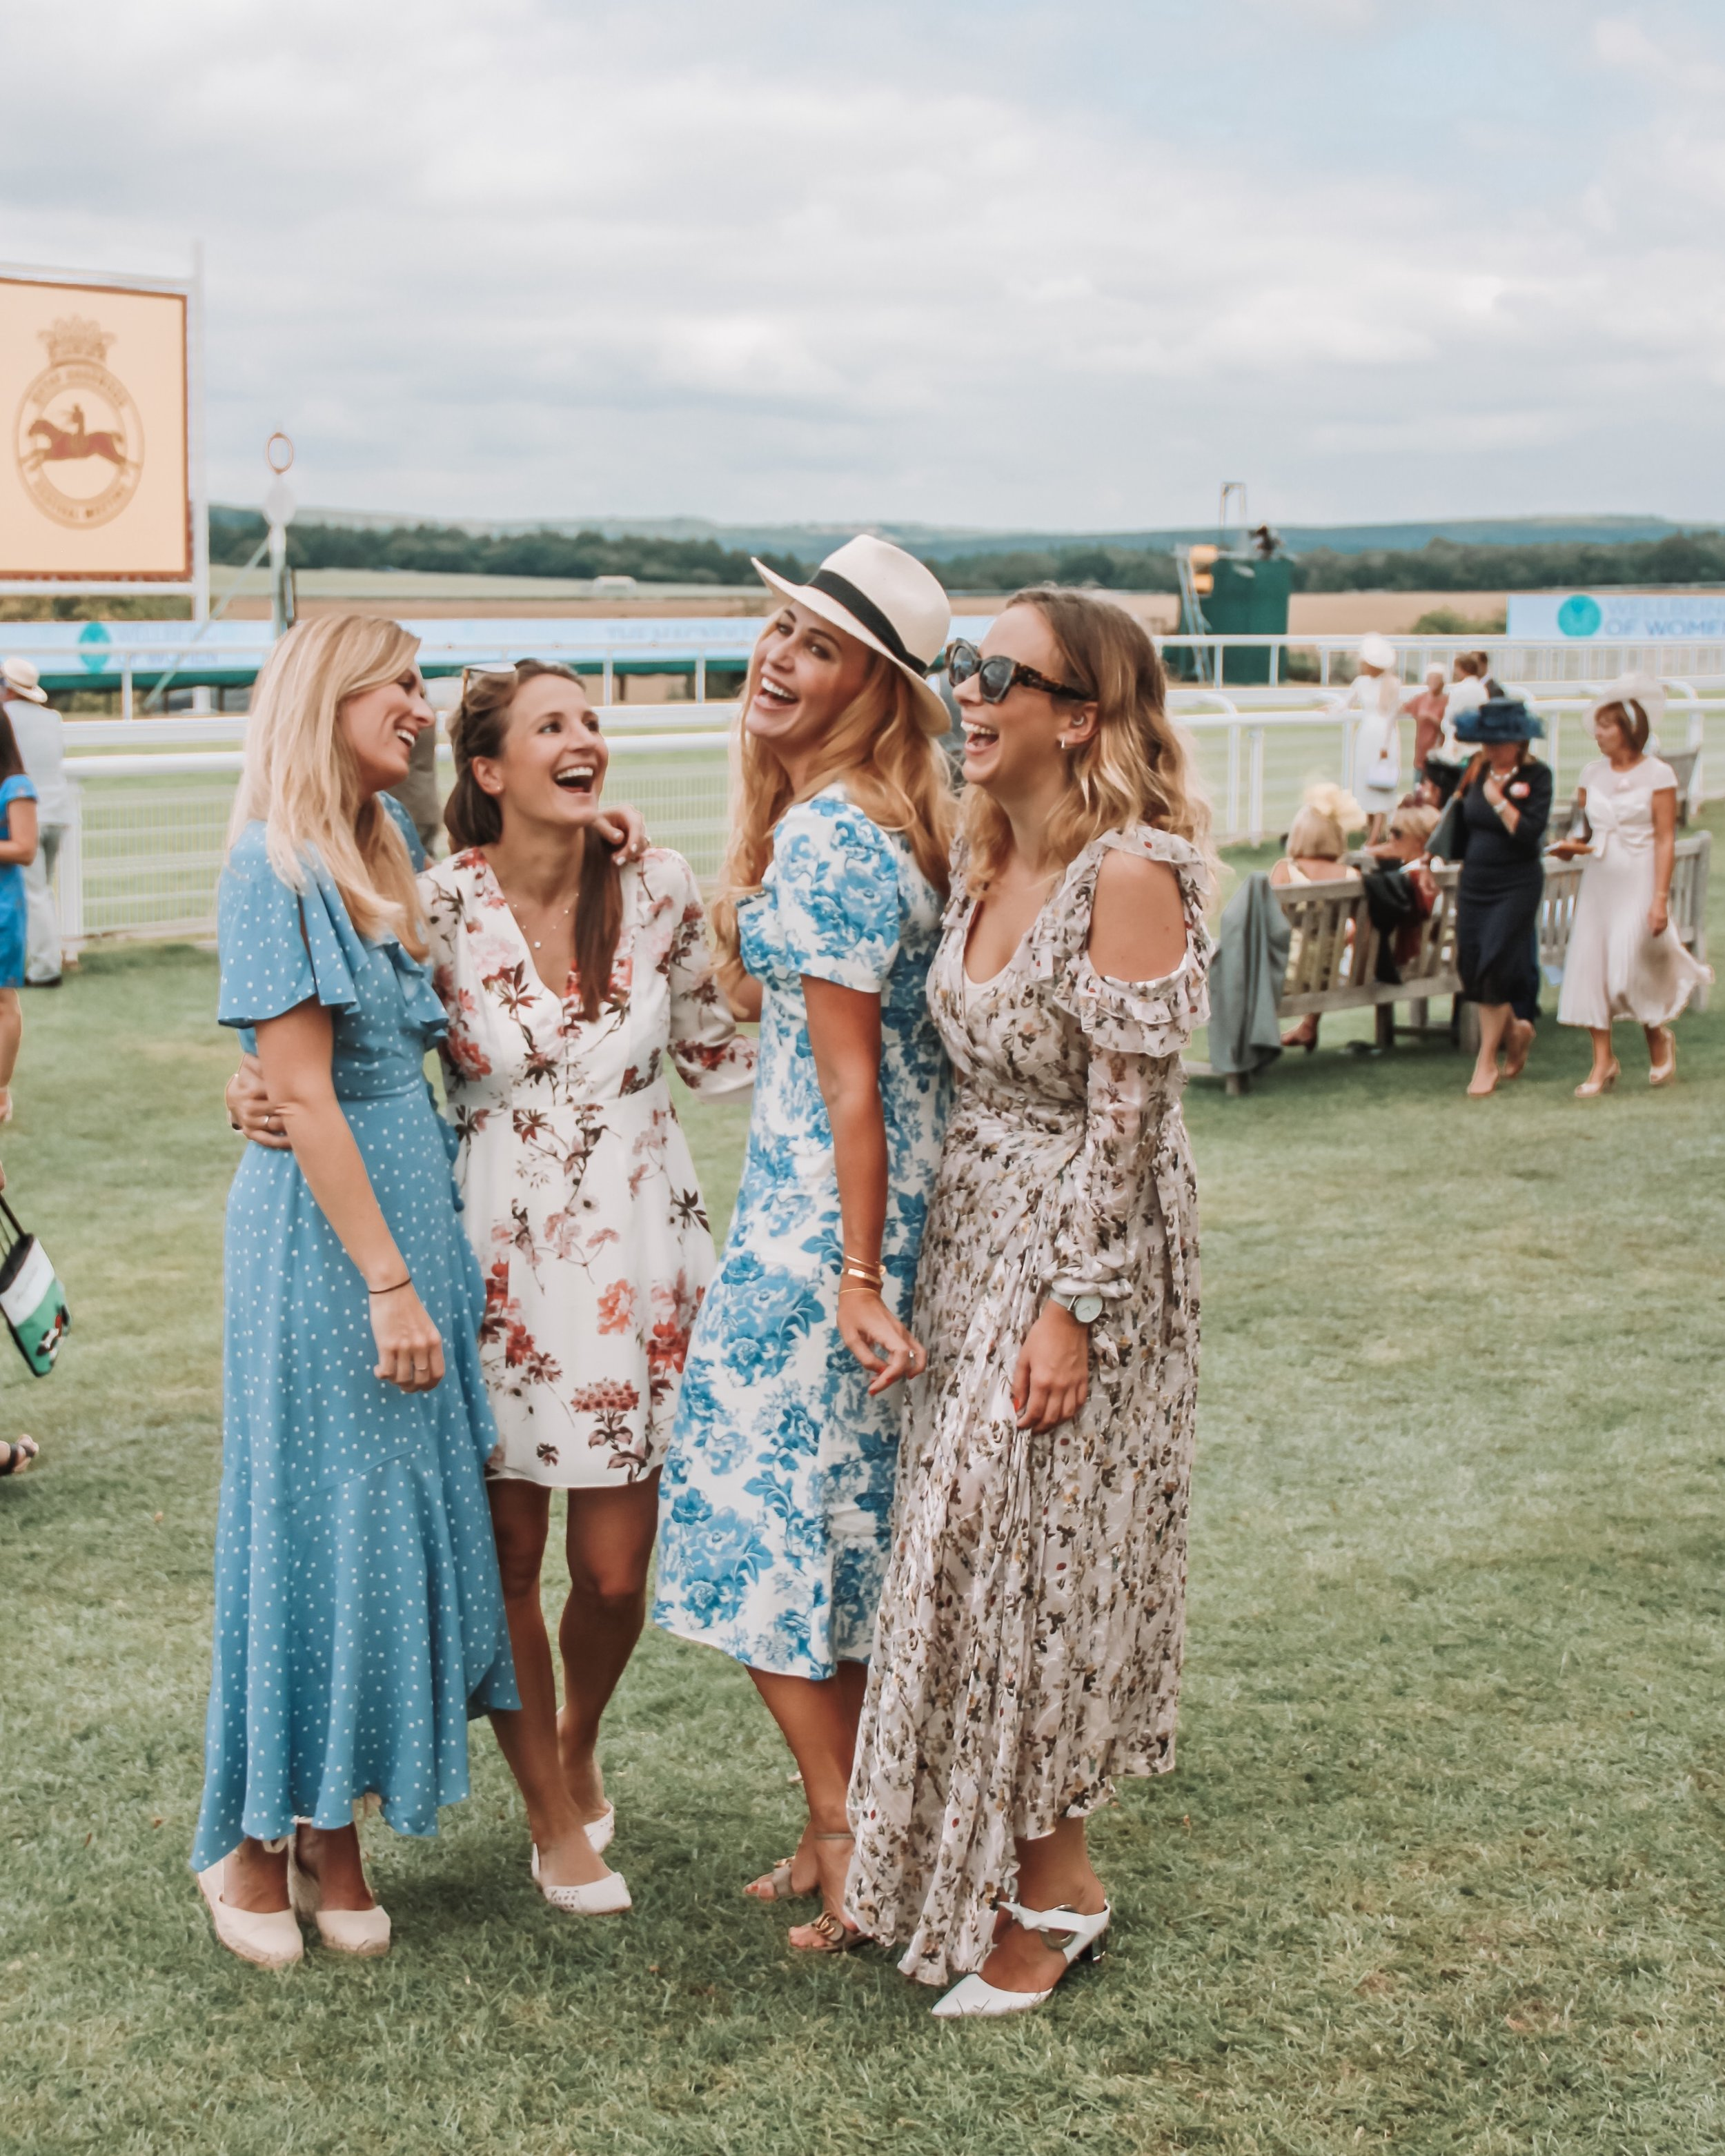 Cat, Cath, me and Lucy in floral frocks in the Richmond Enclosure for Ladies Day at the Goodwood Festival 2019